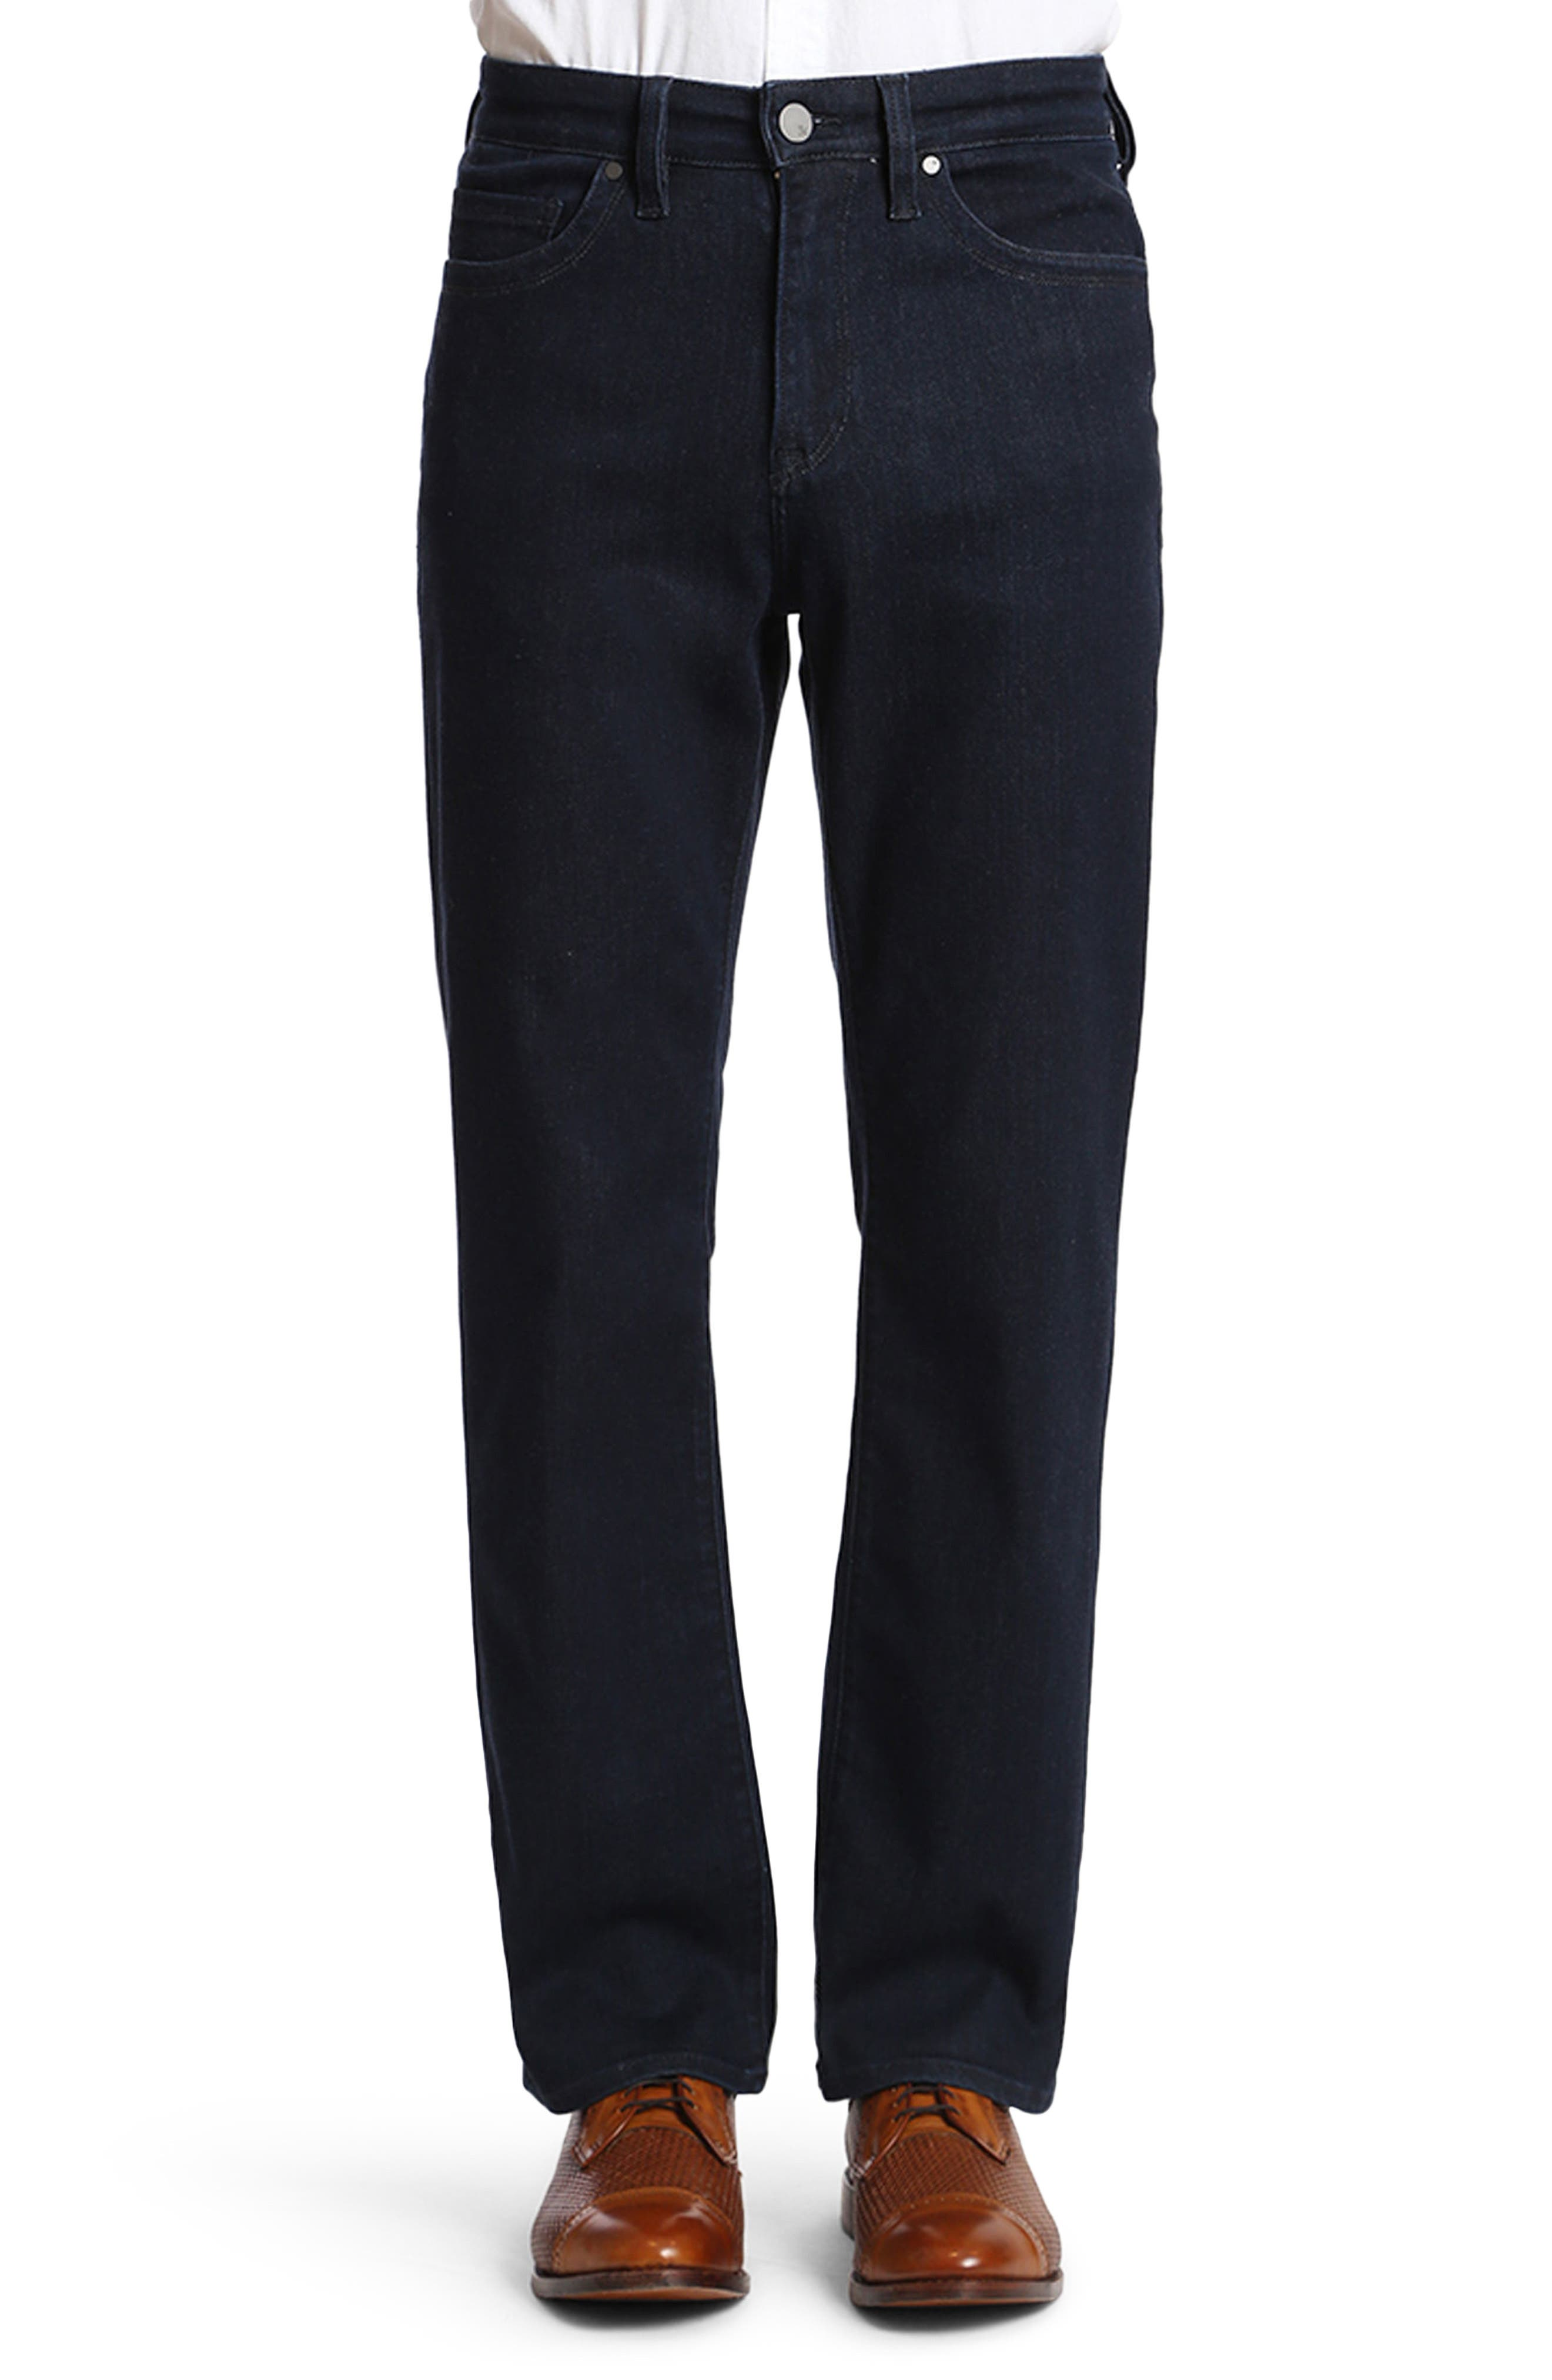 Main Image - 34 Heritage Charisma Relaxed Fit Jeans (Rinse Rome)